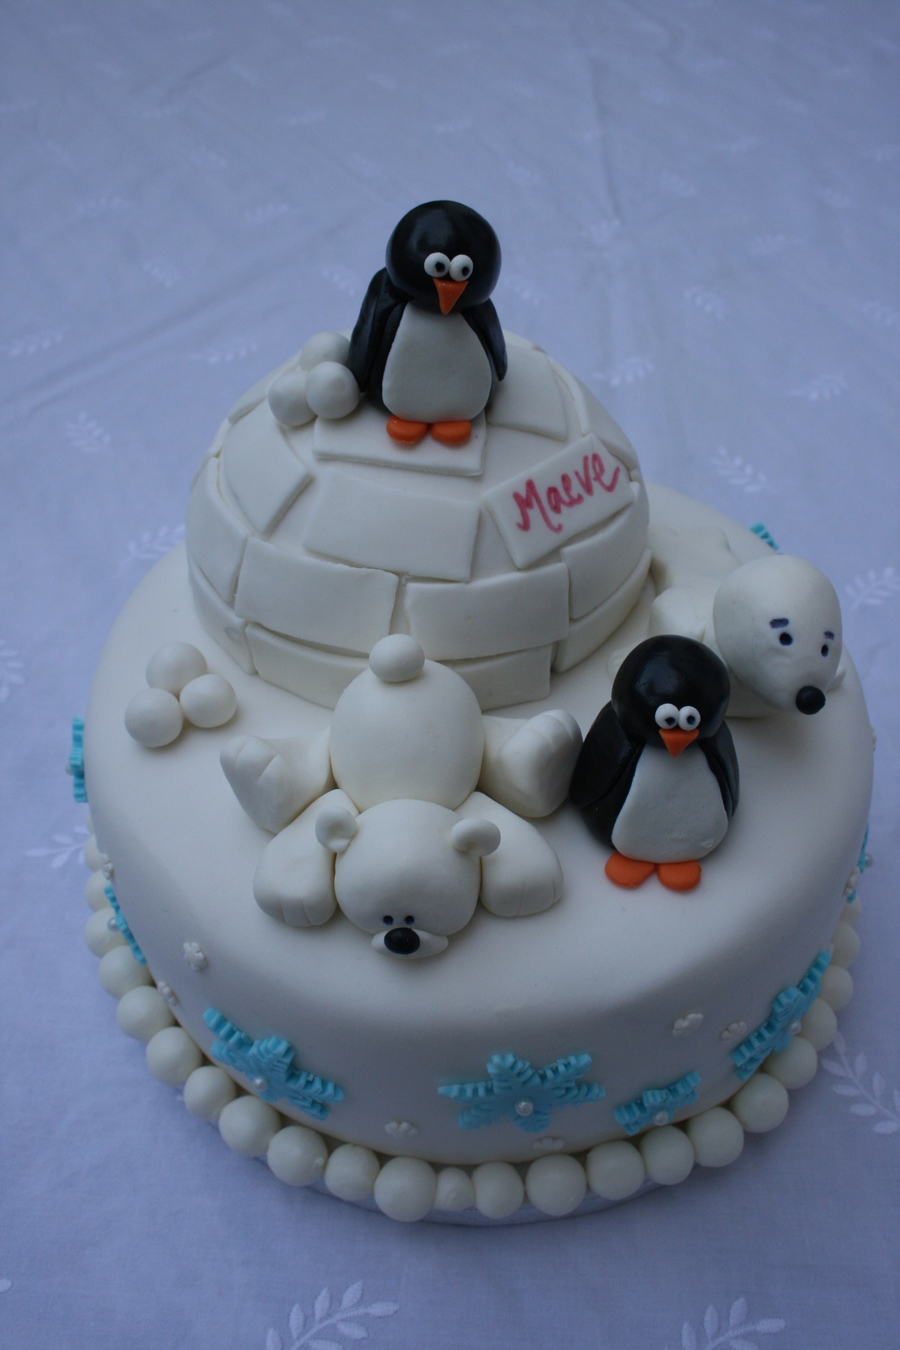 Winter Wonderland Cakecentral Com